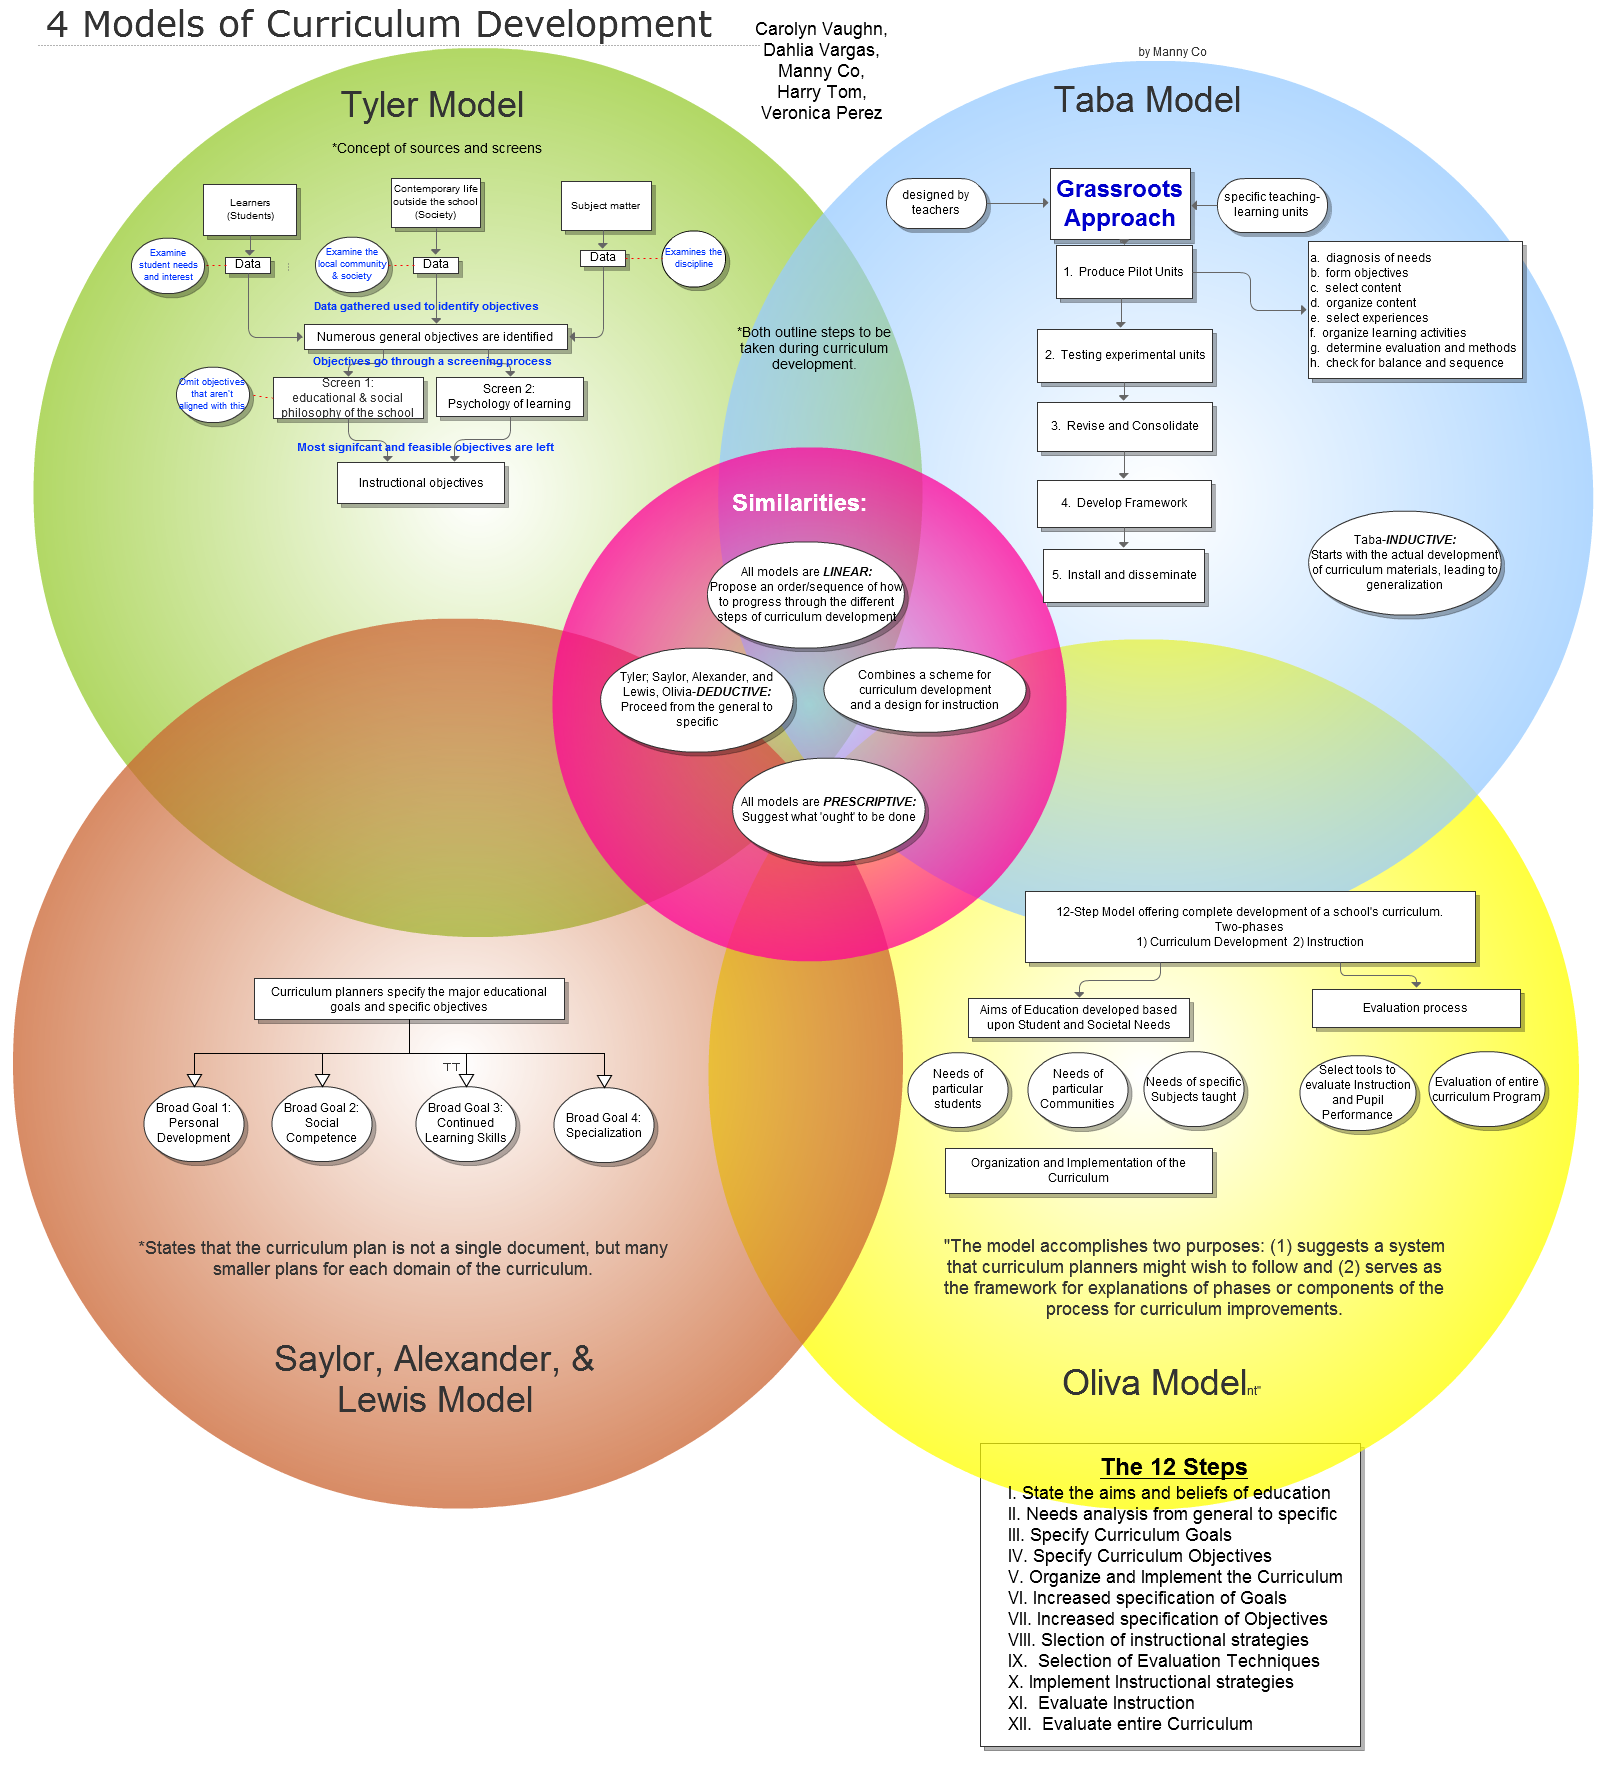 4 models of curriculum development ilgimi ekenler pinterest venn diagrams 4 models of curriculum development pooptronica Image collections